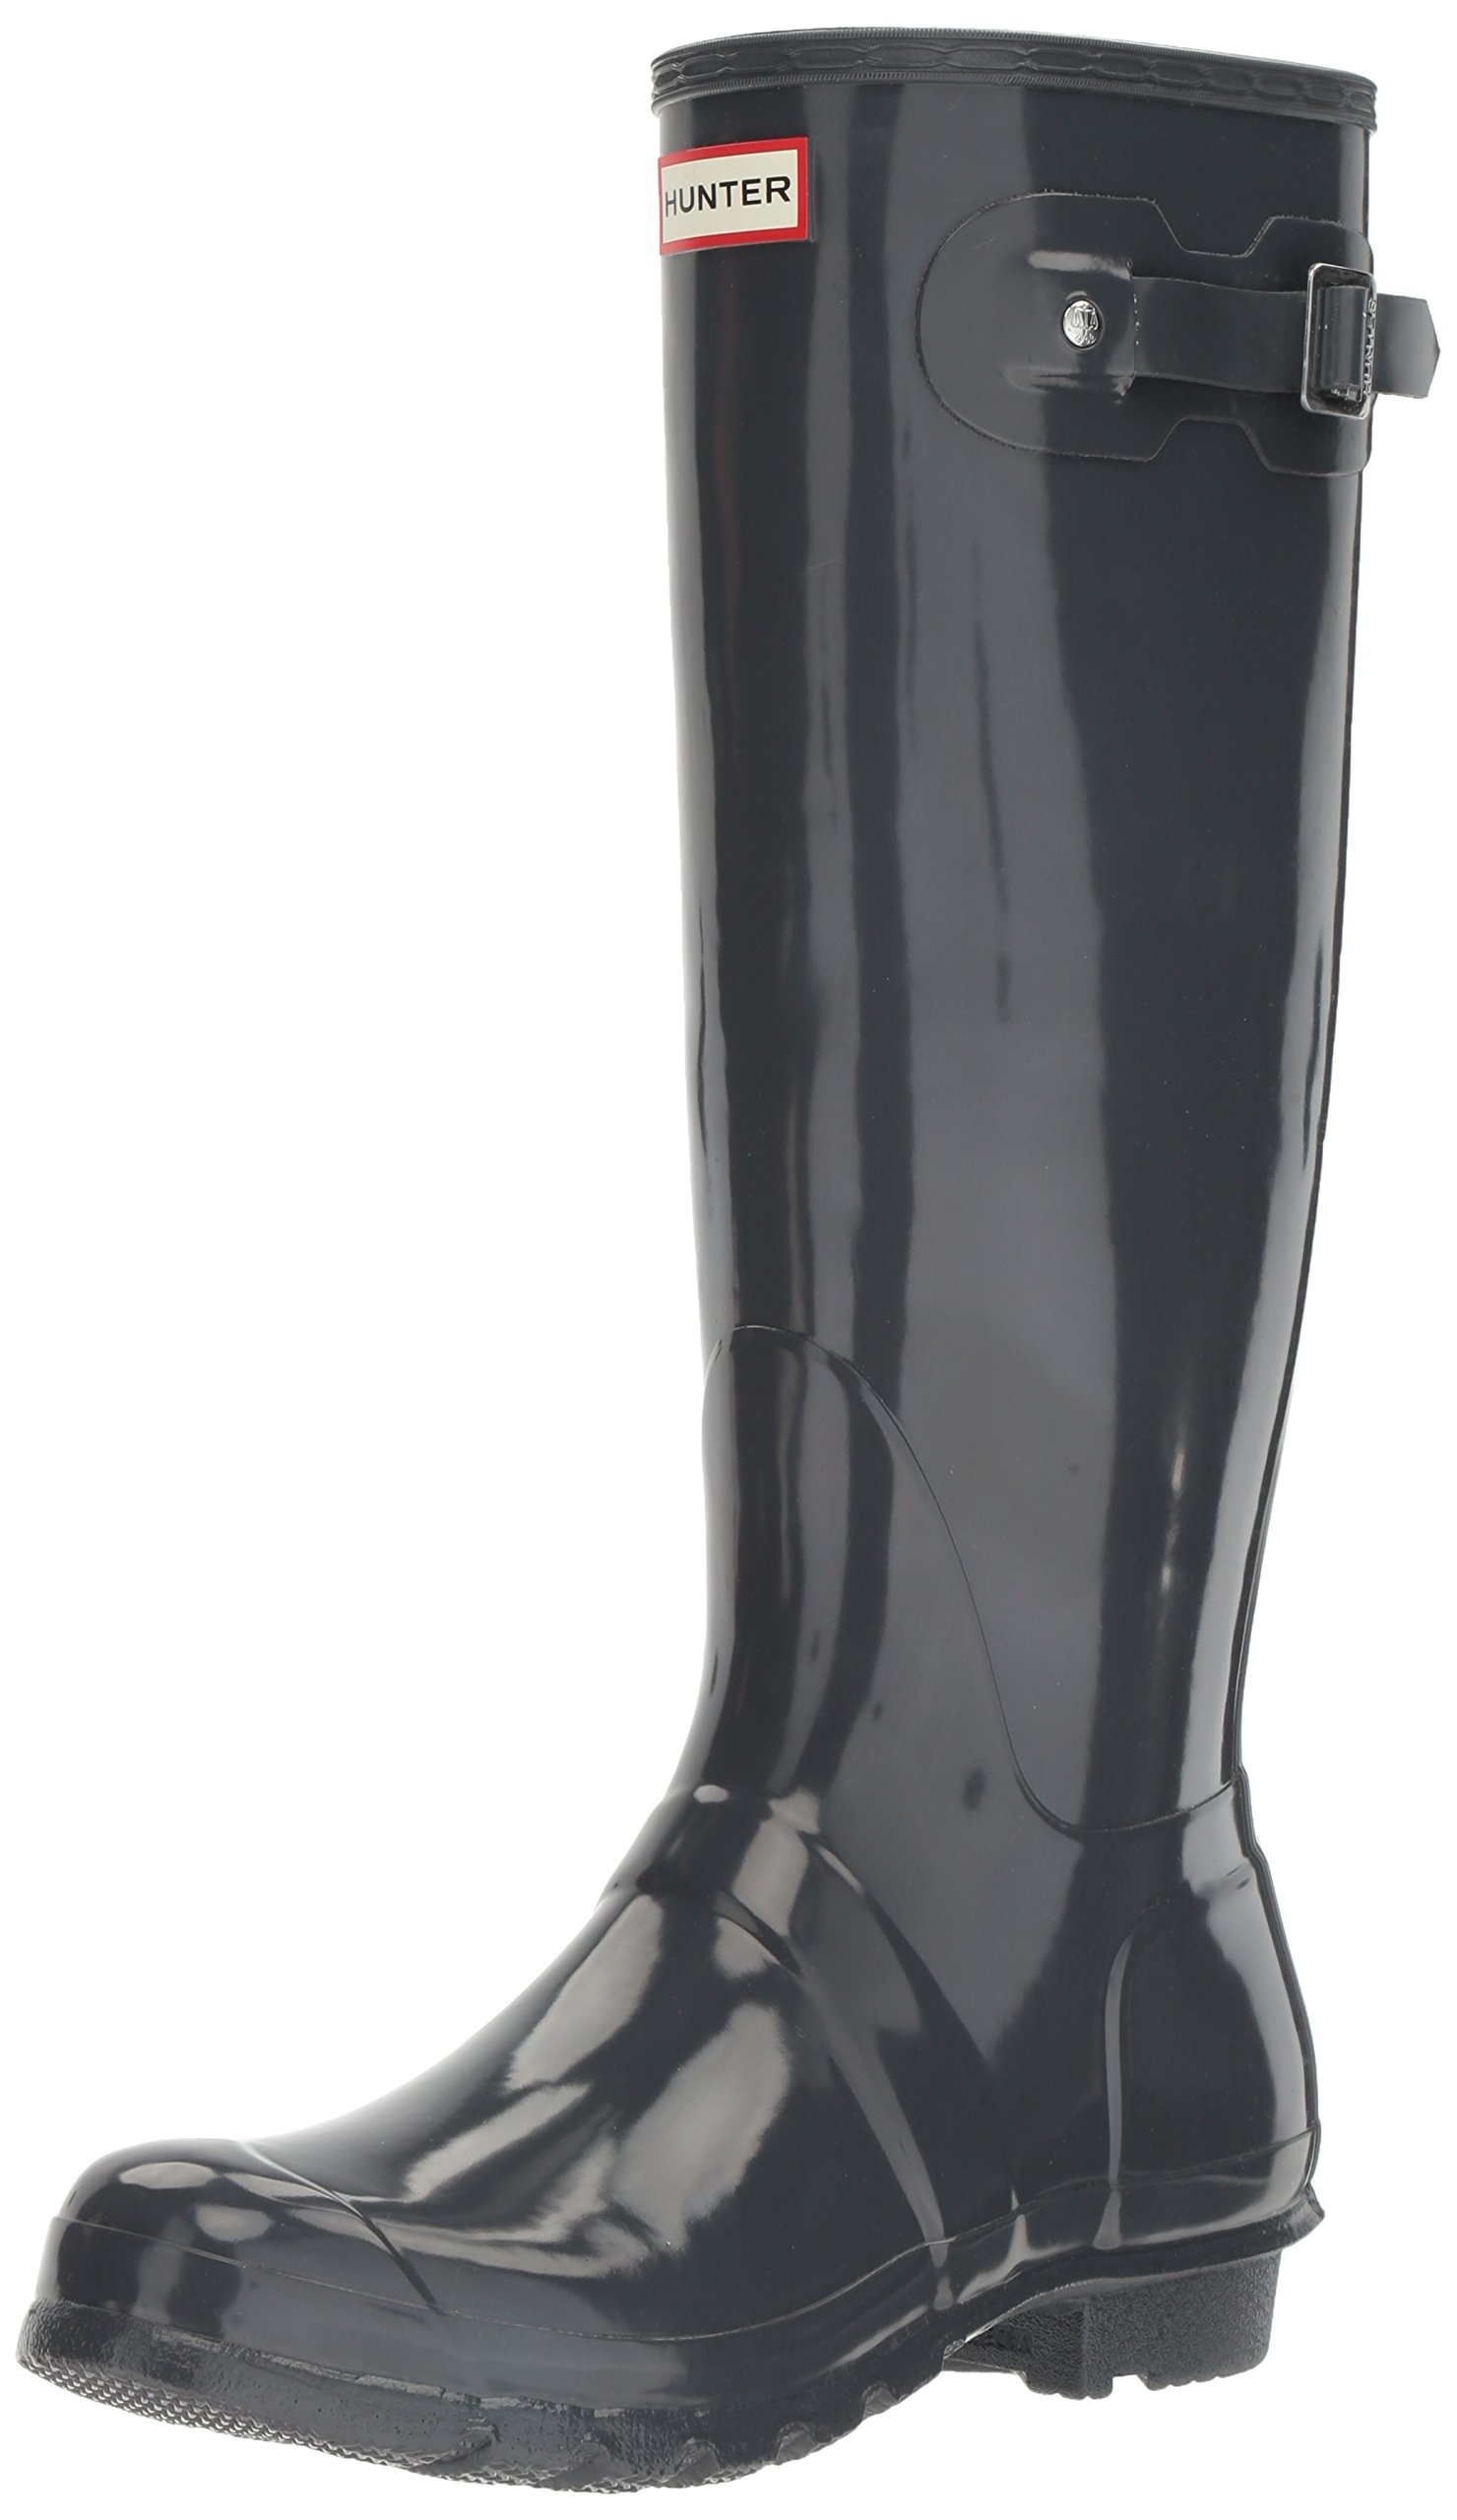 Hunter Women's WFT1000RGL-DSL8 Original Tall Gloss Rain Boots, Grey, 8